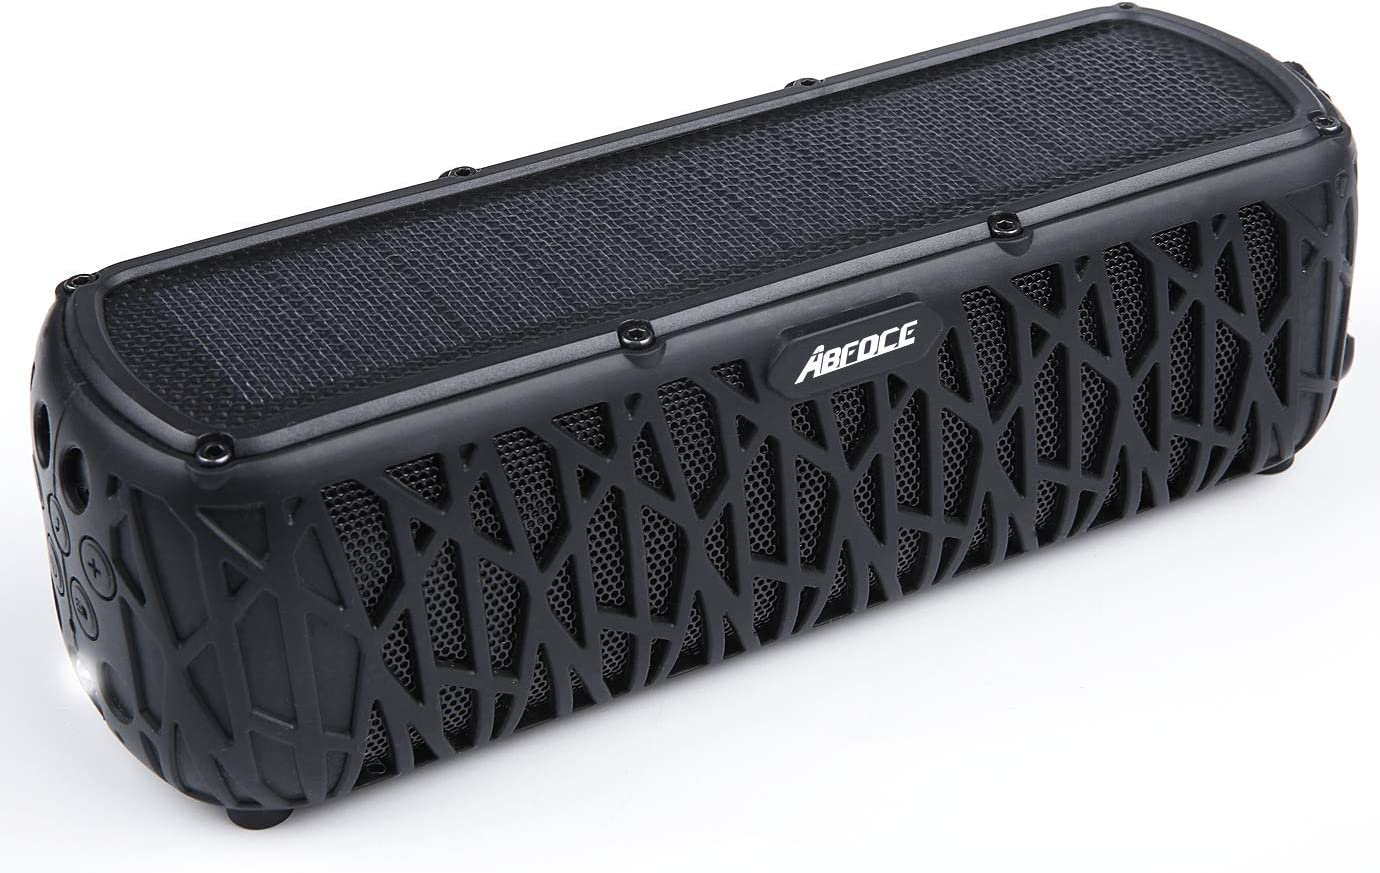 ABFOCE Solar Bluetooth Speaker Portable Outdoor Bluetooth IPX9 Waterproof  Speaker with 9mAh Power Bank,90 Hours Play Time Dual Speaker with Mic,